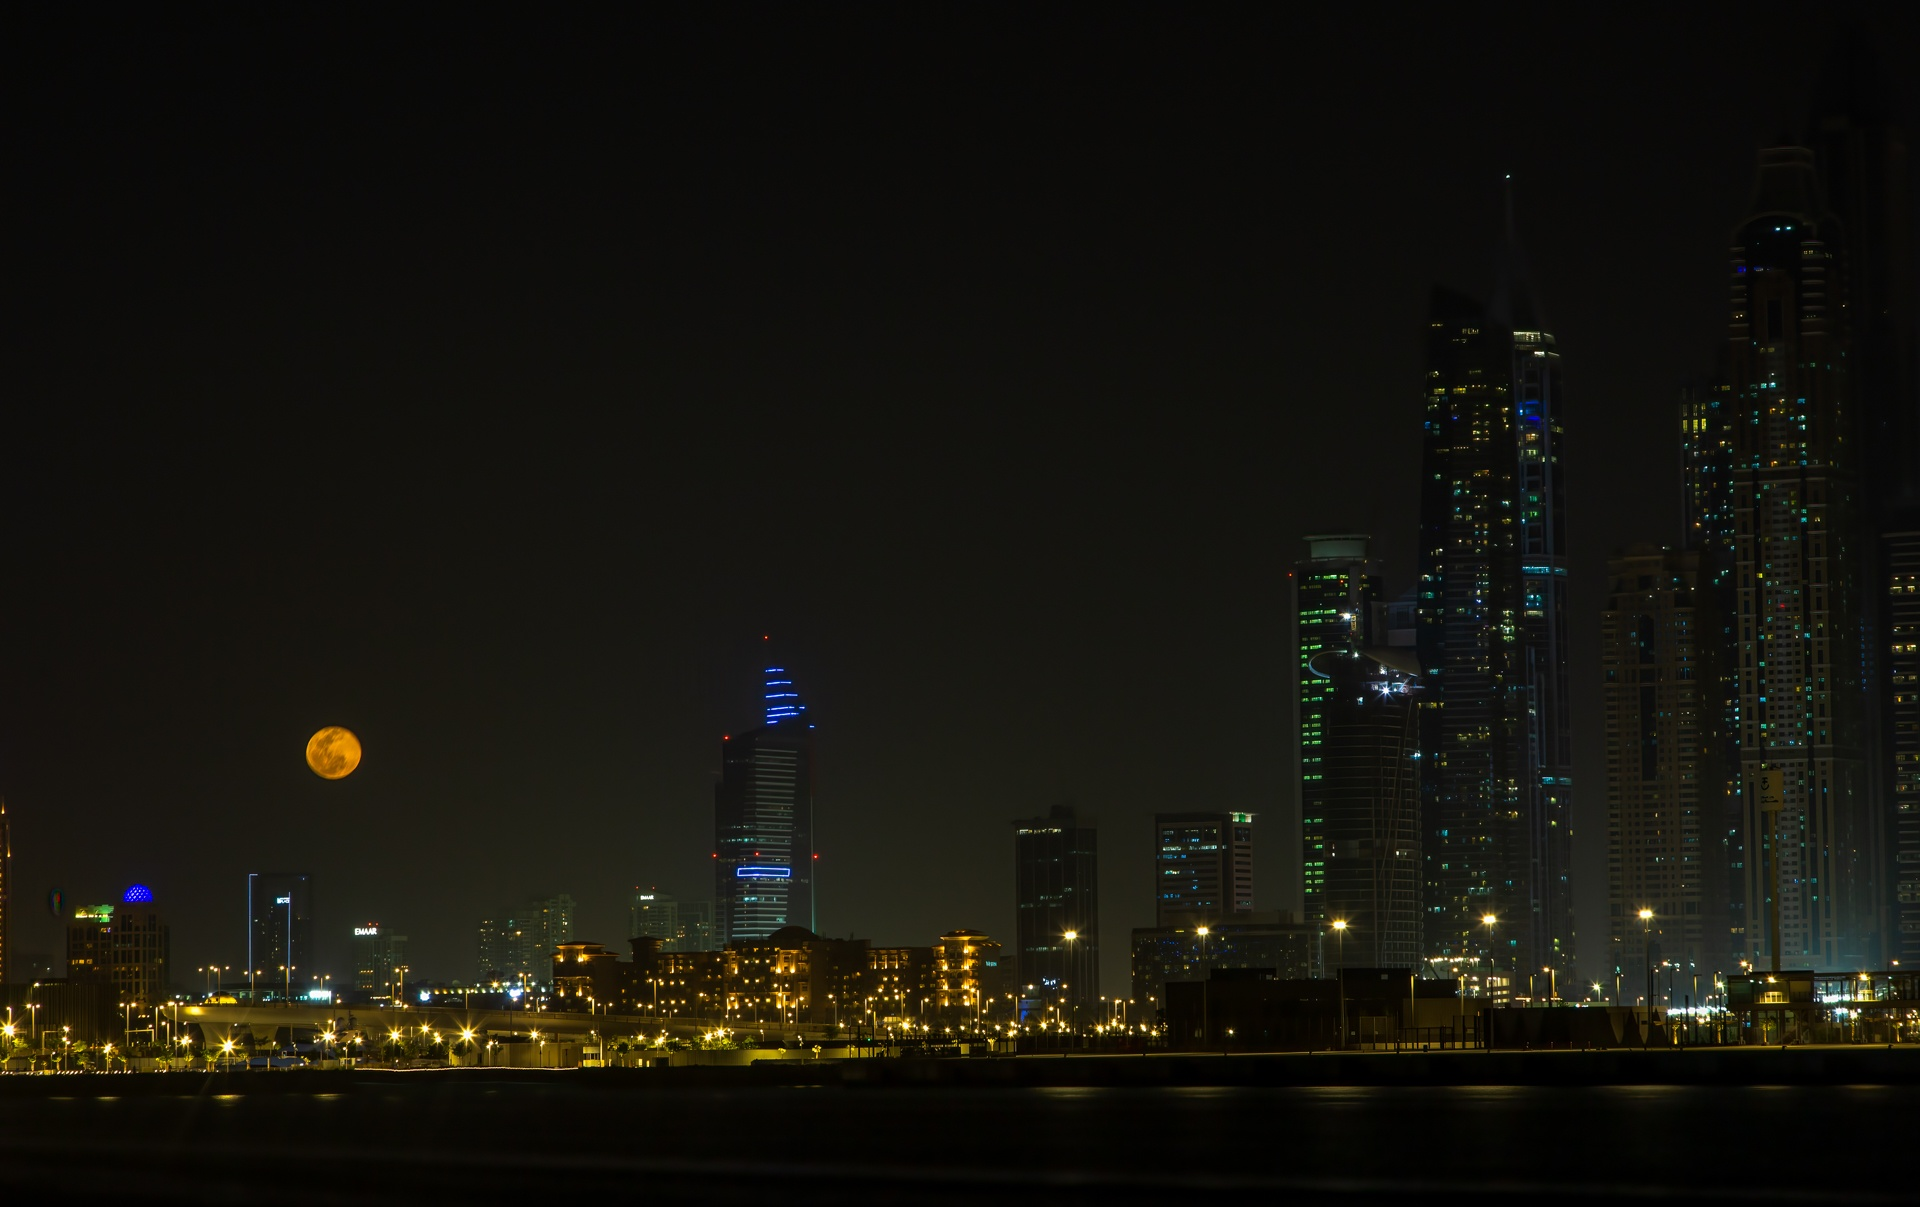 Rising moon over cityscape